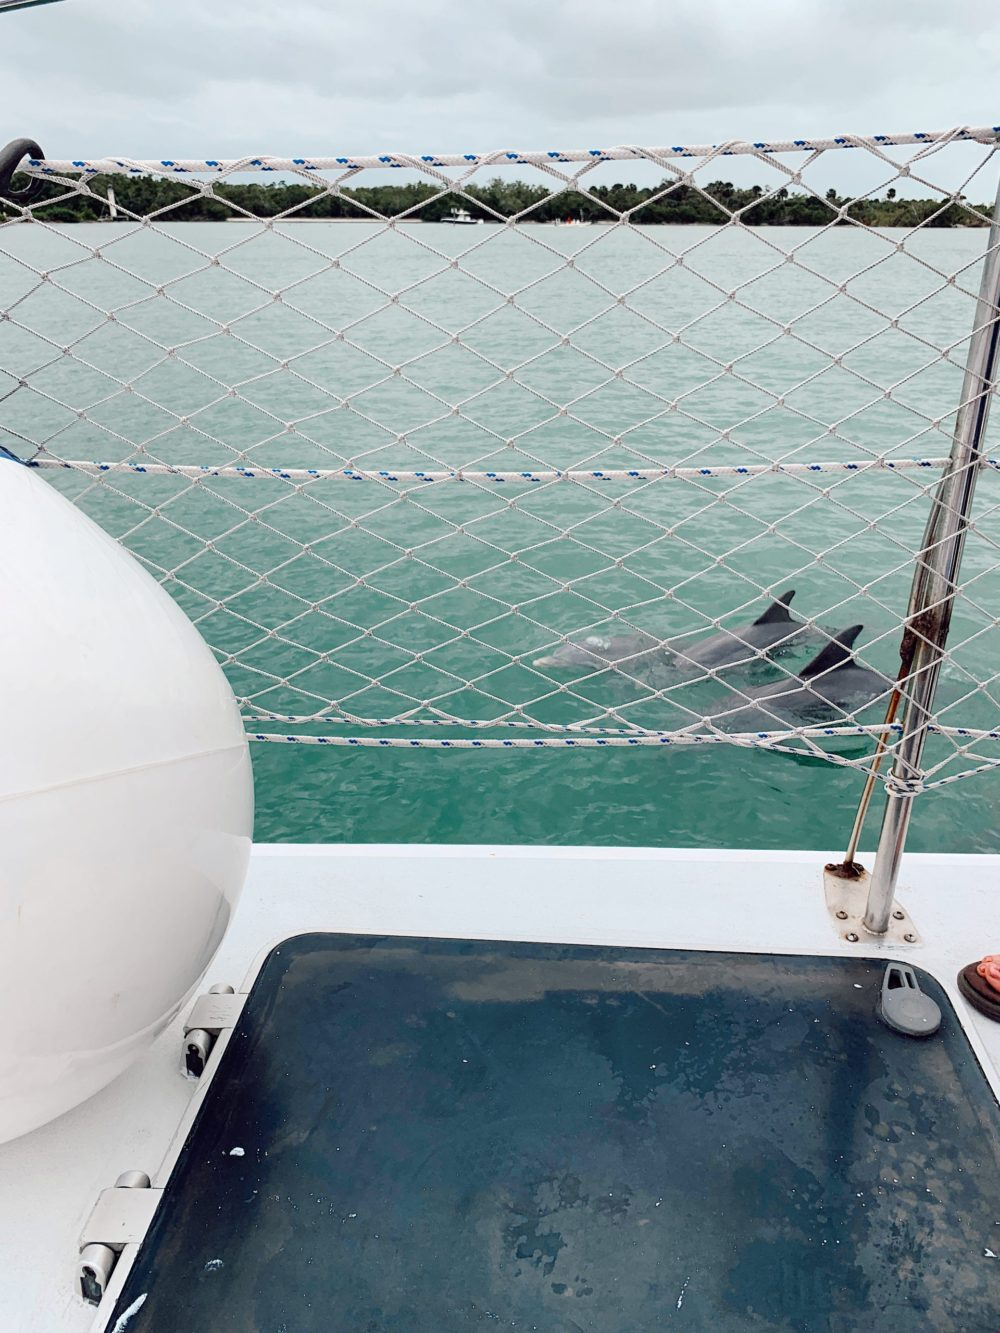 Relaxing catamaran trip with Sweet Liberty, the largest Sailing Catamaran in Southwest Florida. Dolphin sight seeing! | Spectacular Things to Do in Naples FL This Weekend by popular Florida blog, Fresh Mommy Blog: image of three dolphins swimming in the ocean.